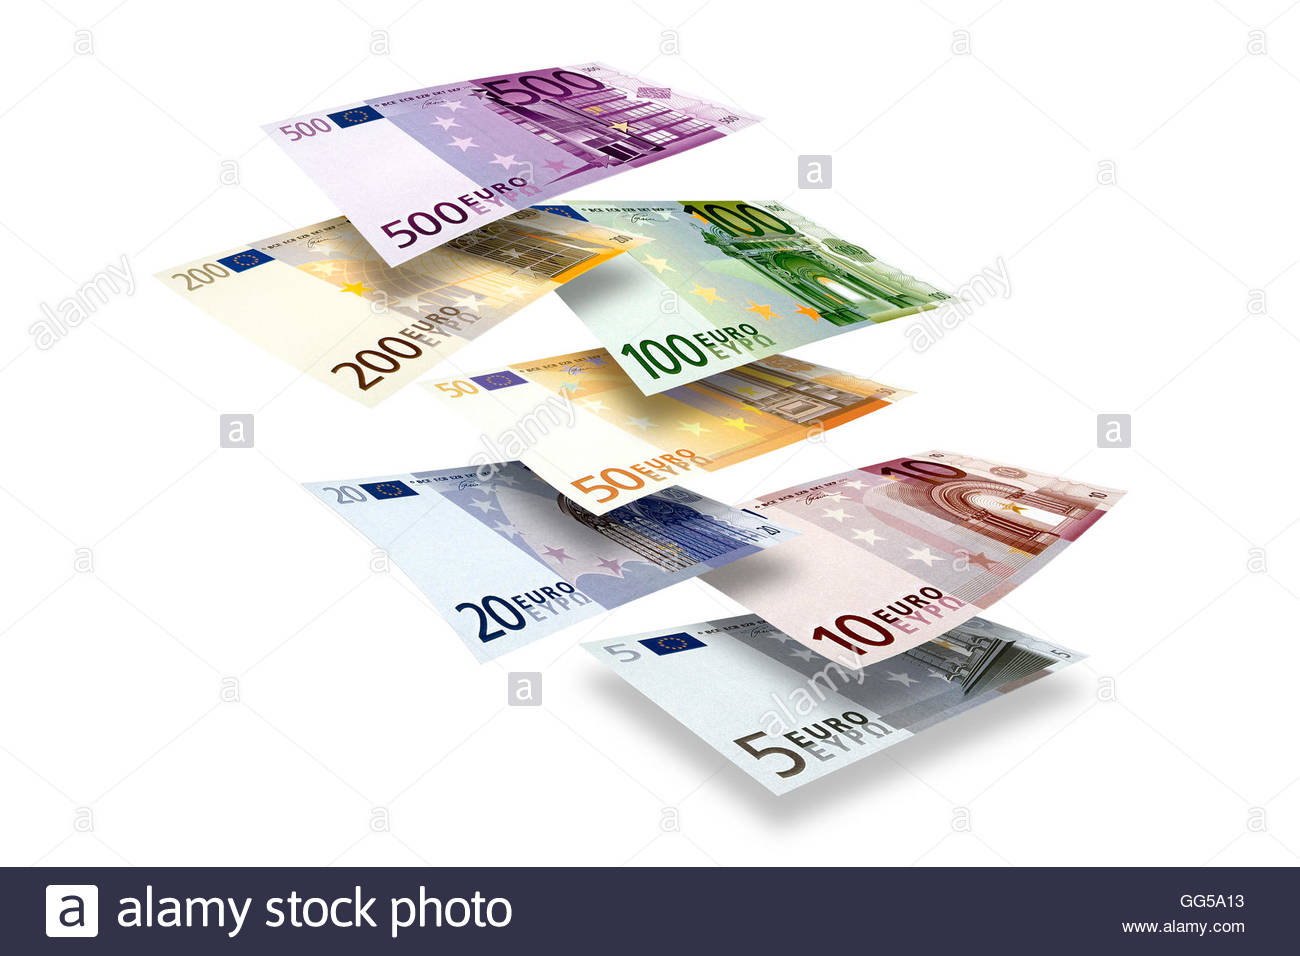 Stash of euros photos stash of euros images alamy for Fenetre flottante